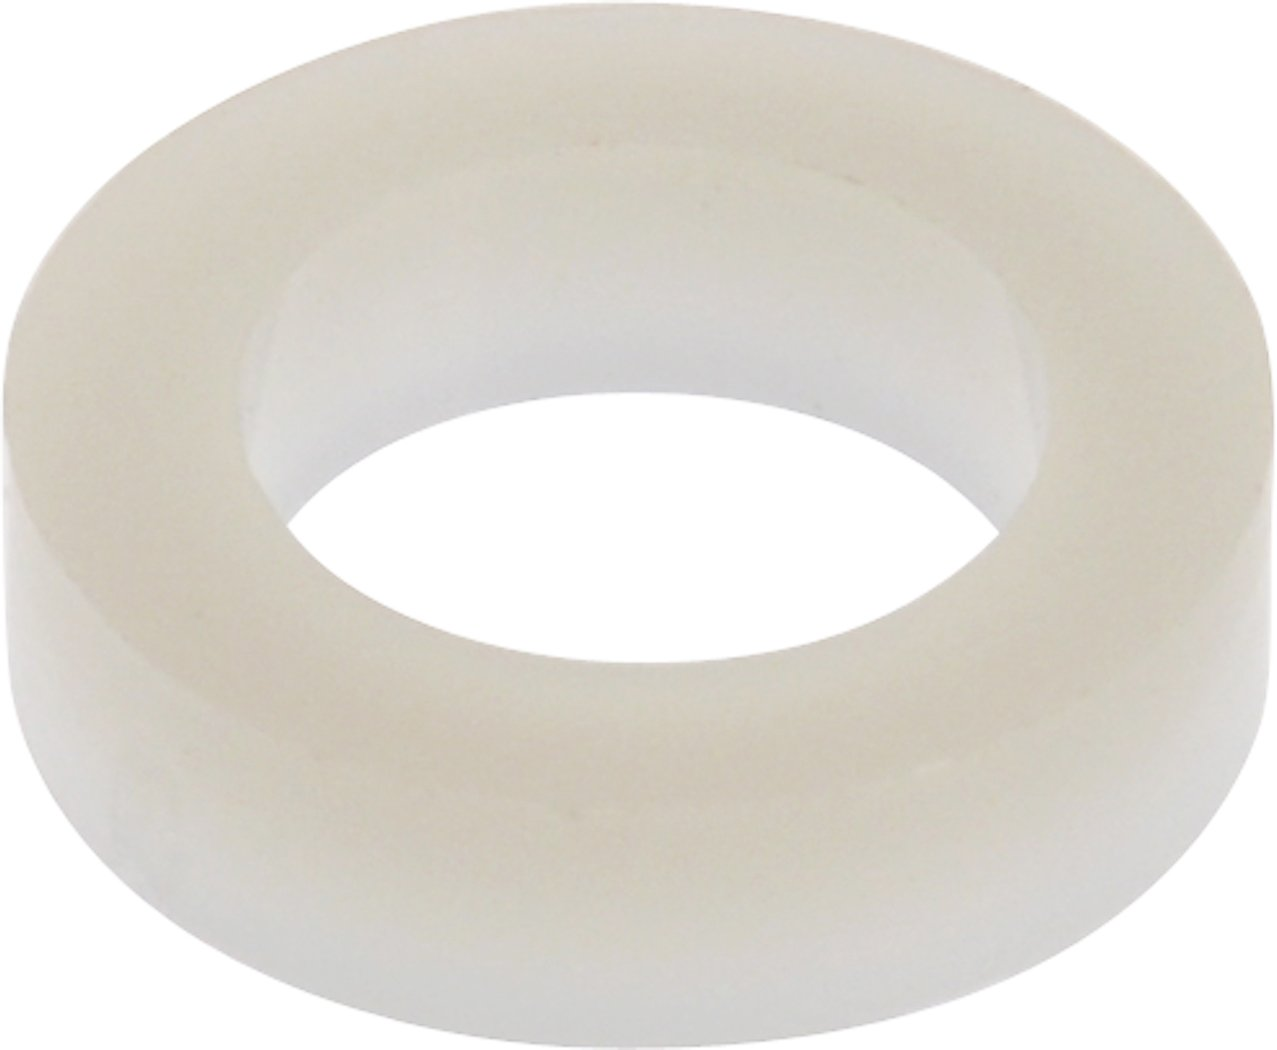 The Hillman Group 59552 0.500 x 0.317 x 0.125-Inch Nylon Fender Washers, 40-Pack